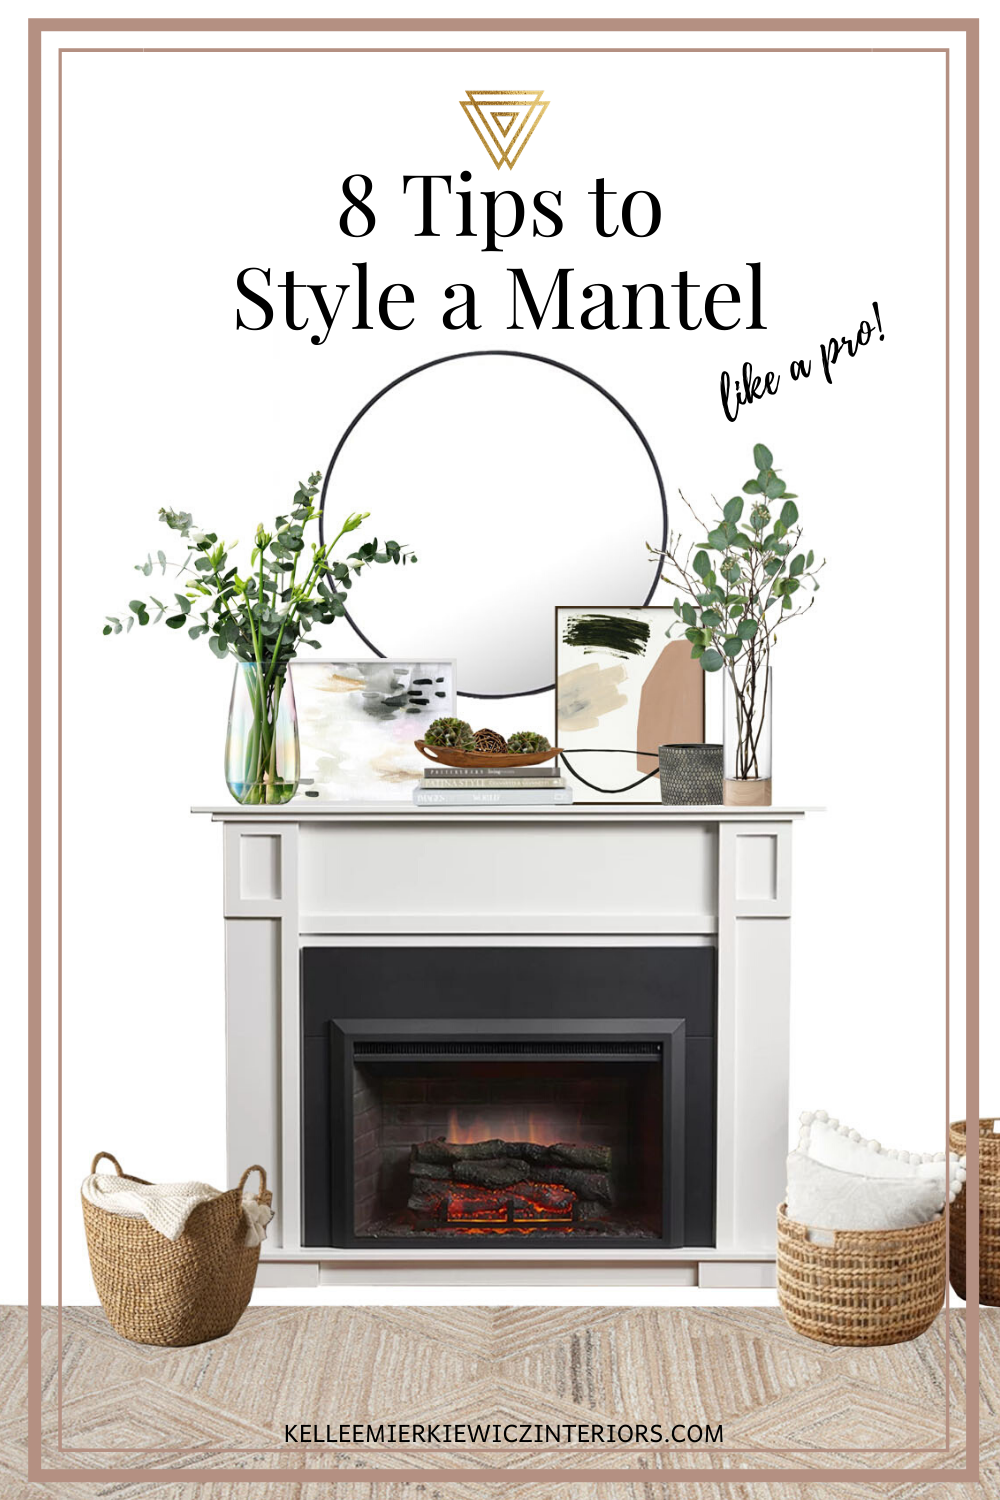 Photo of 8 Tips to Style a Mantel Like a Pro